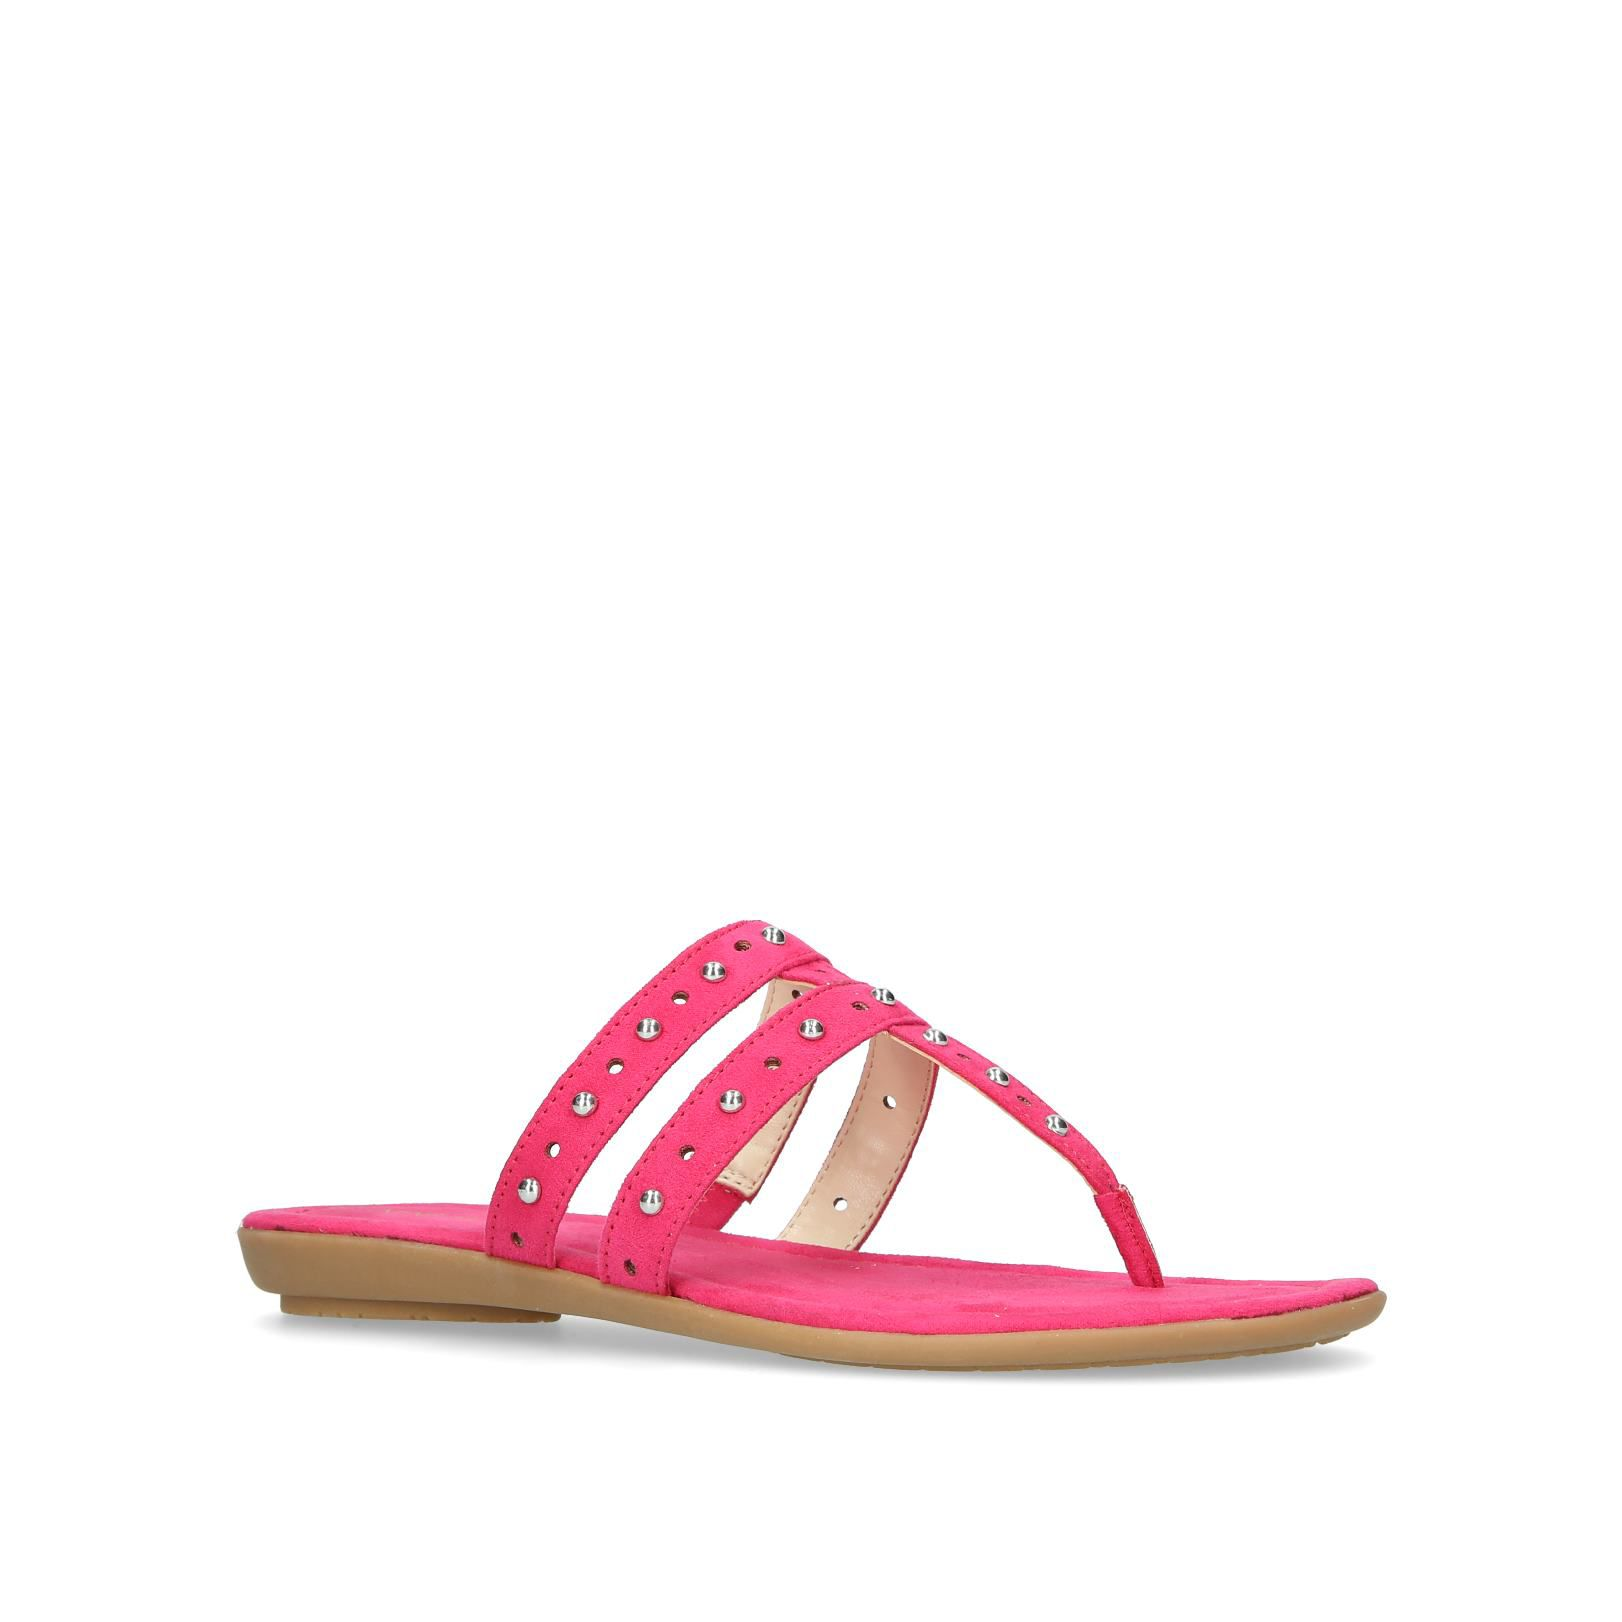 Nine West Keelova Sandals, Fuchsia